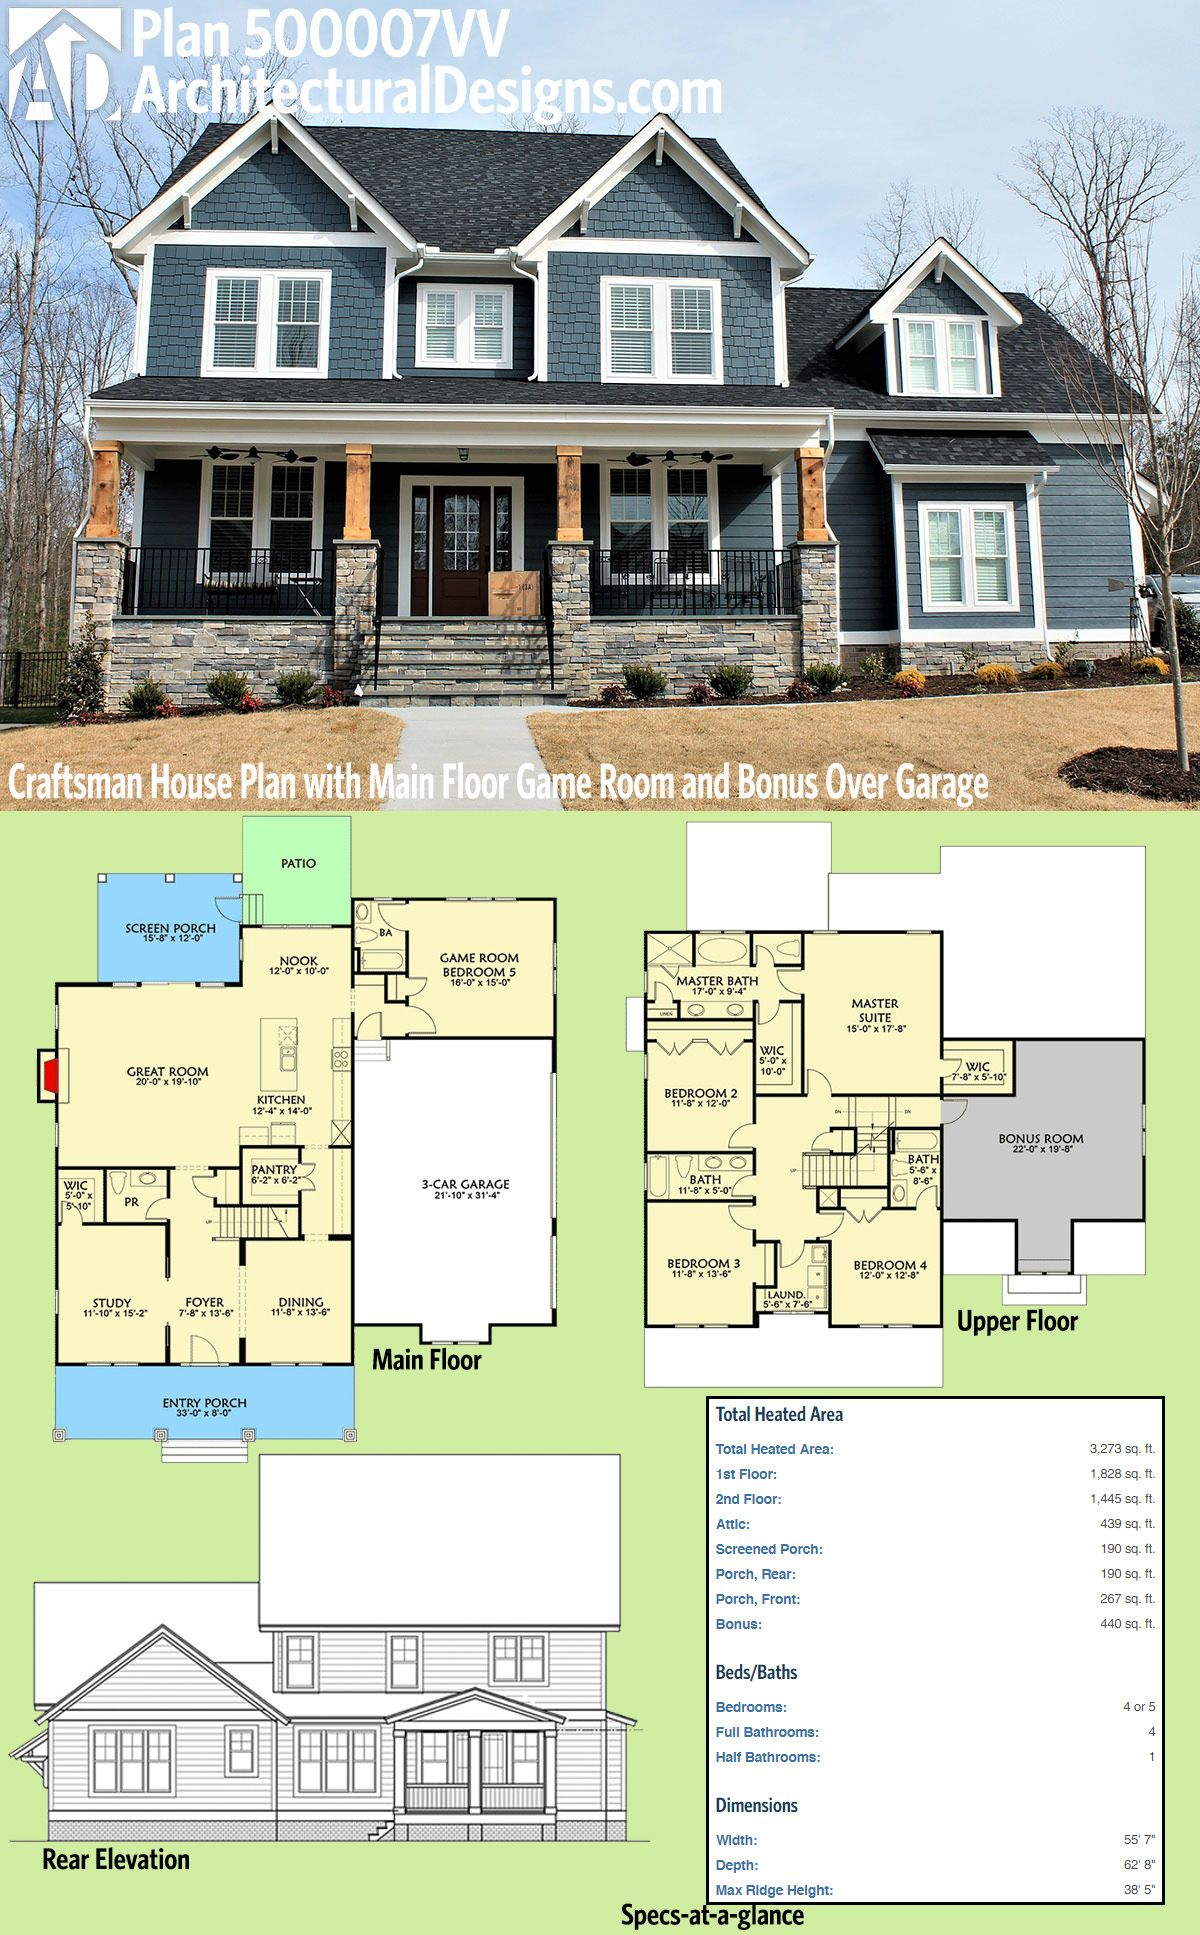 House box window design  plan vv craftsman house plan with main floor game room and